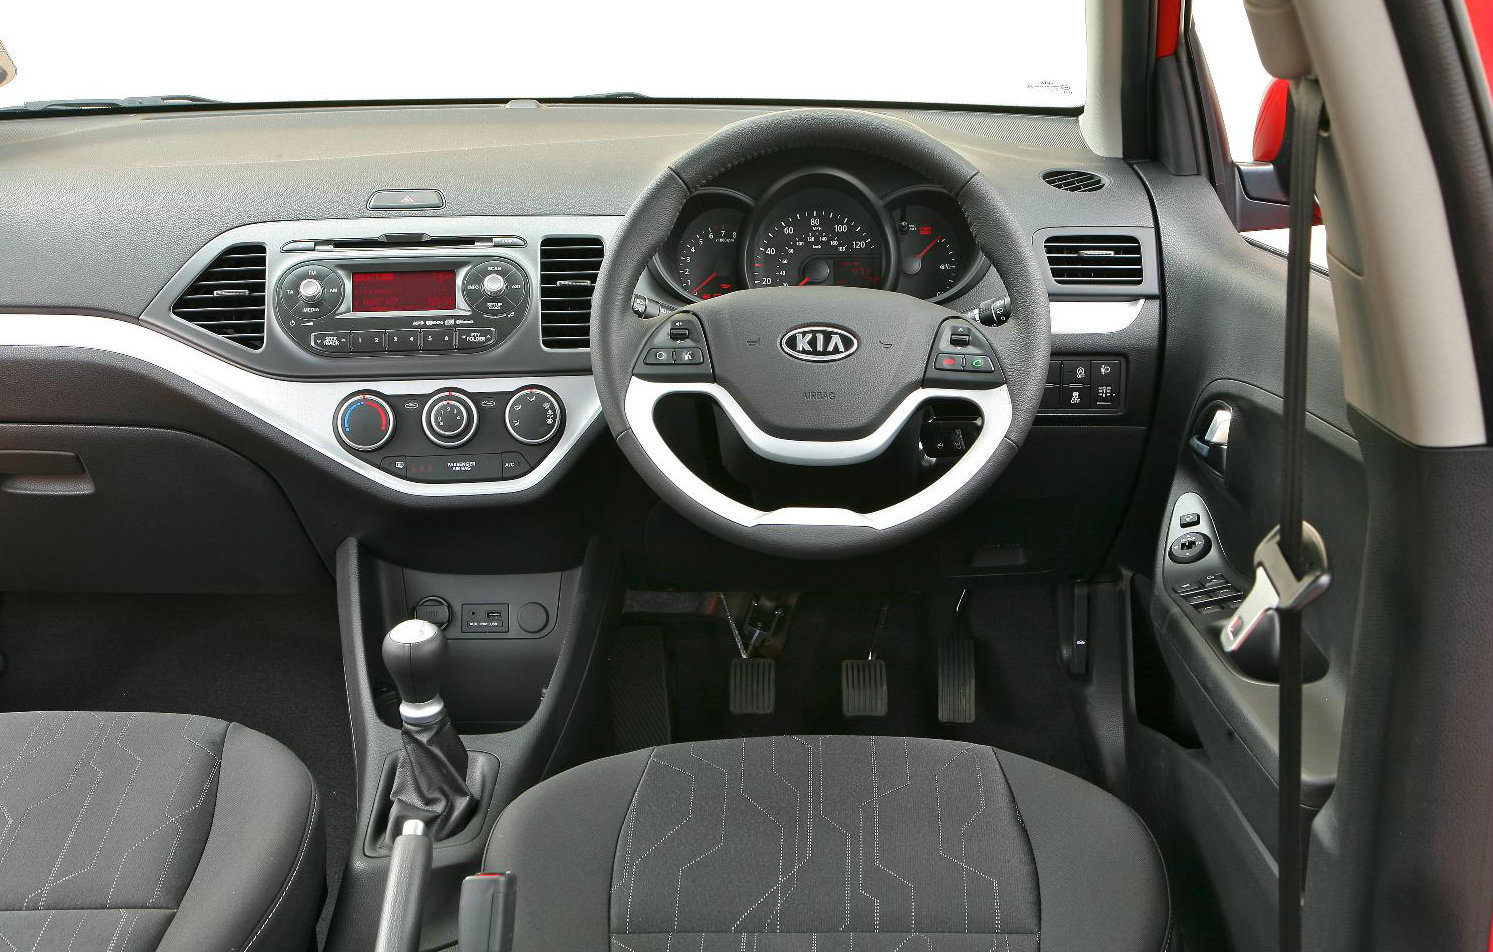 Interior of Used Kia Picanto